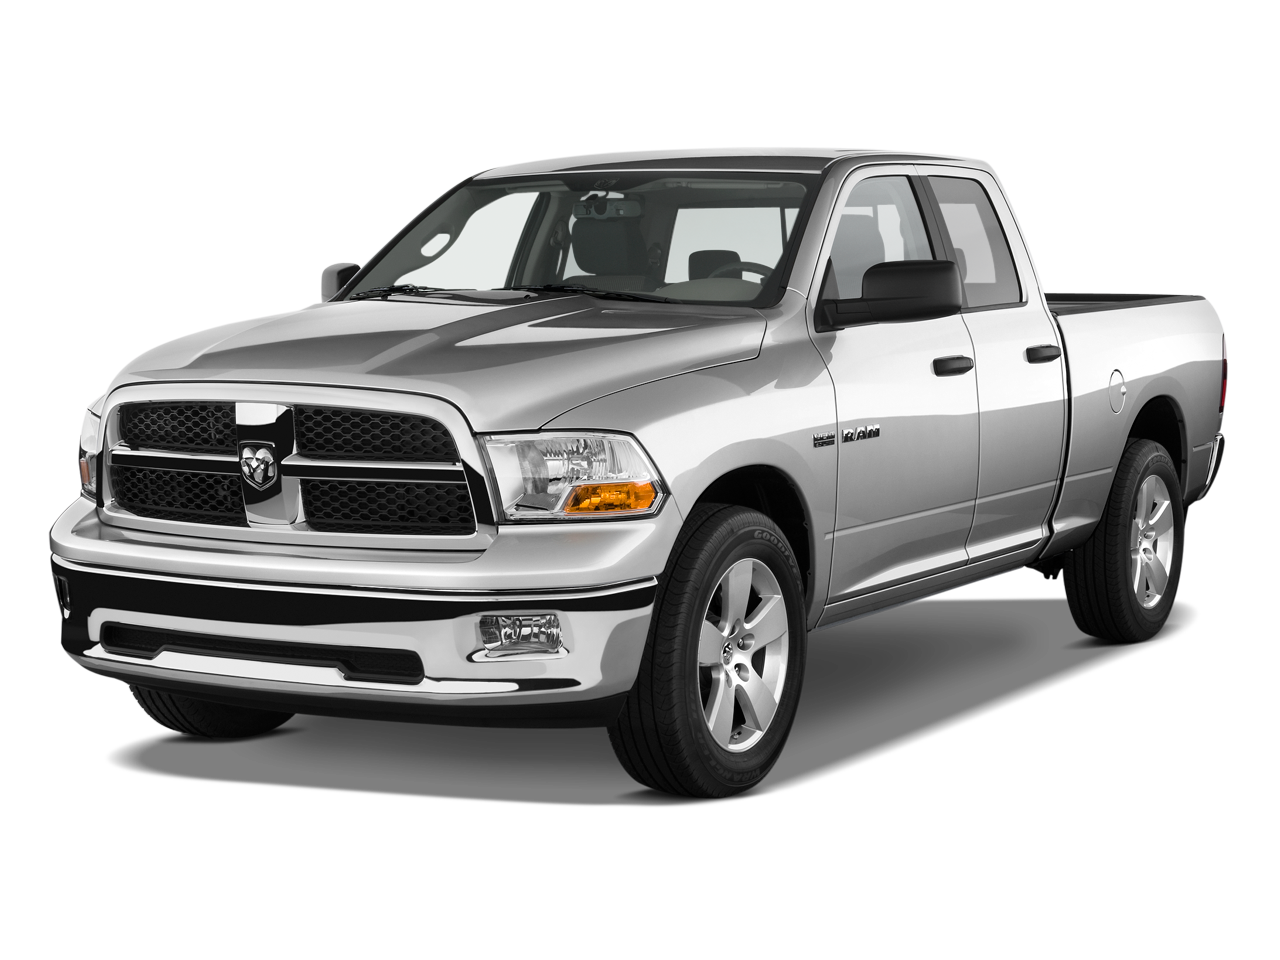 2011 dodge ram 1500 cummins diesel killed. Black Bedroom Furniture Sets. Home Design Ideas